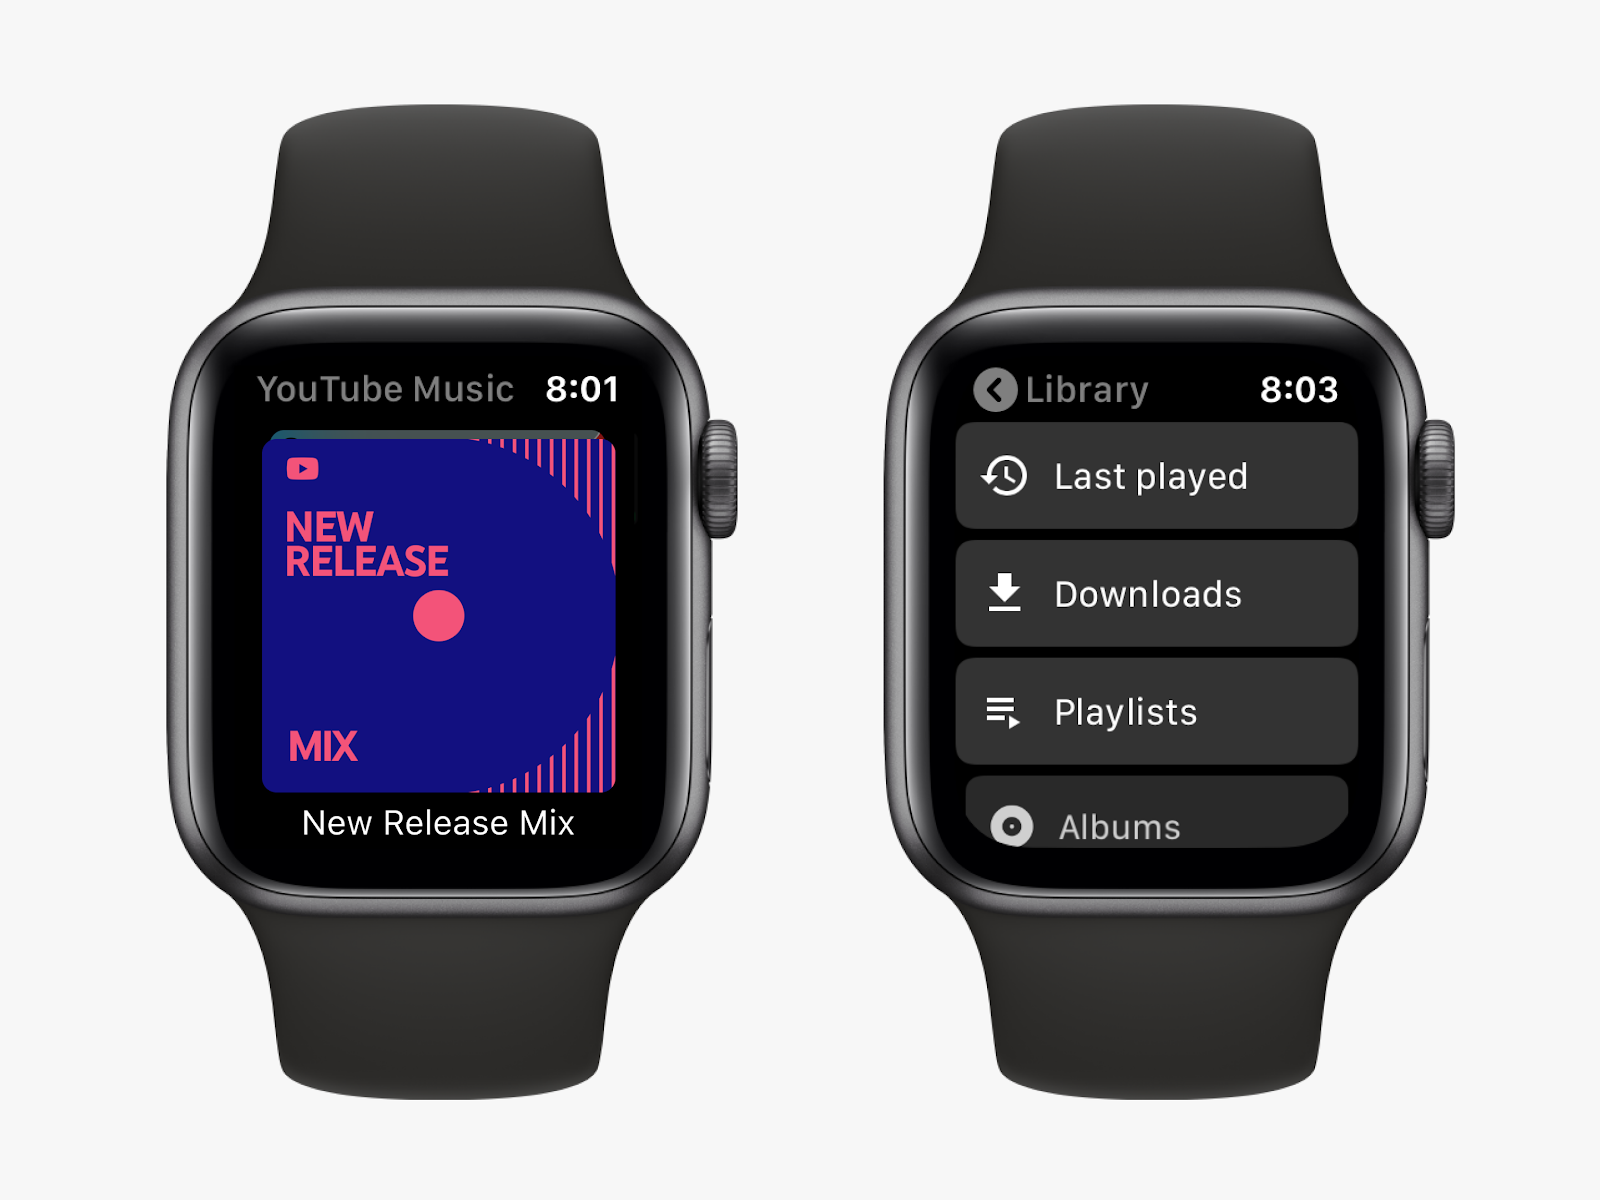 YouTube Music App For Apple Watch Hints At Google's Ìssues With Wear OS, Report Says